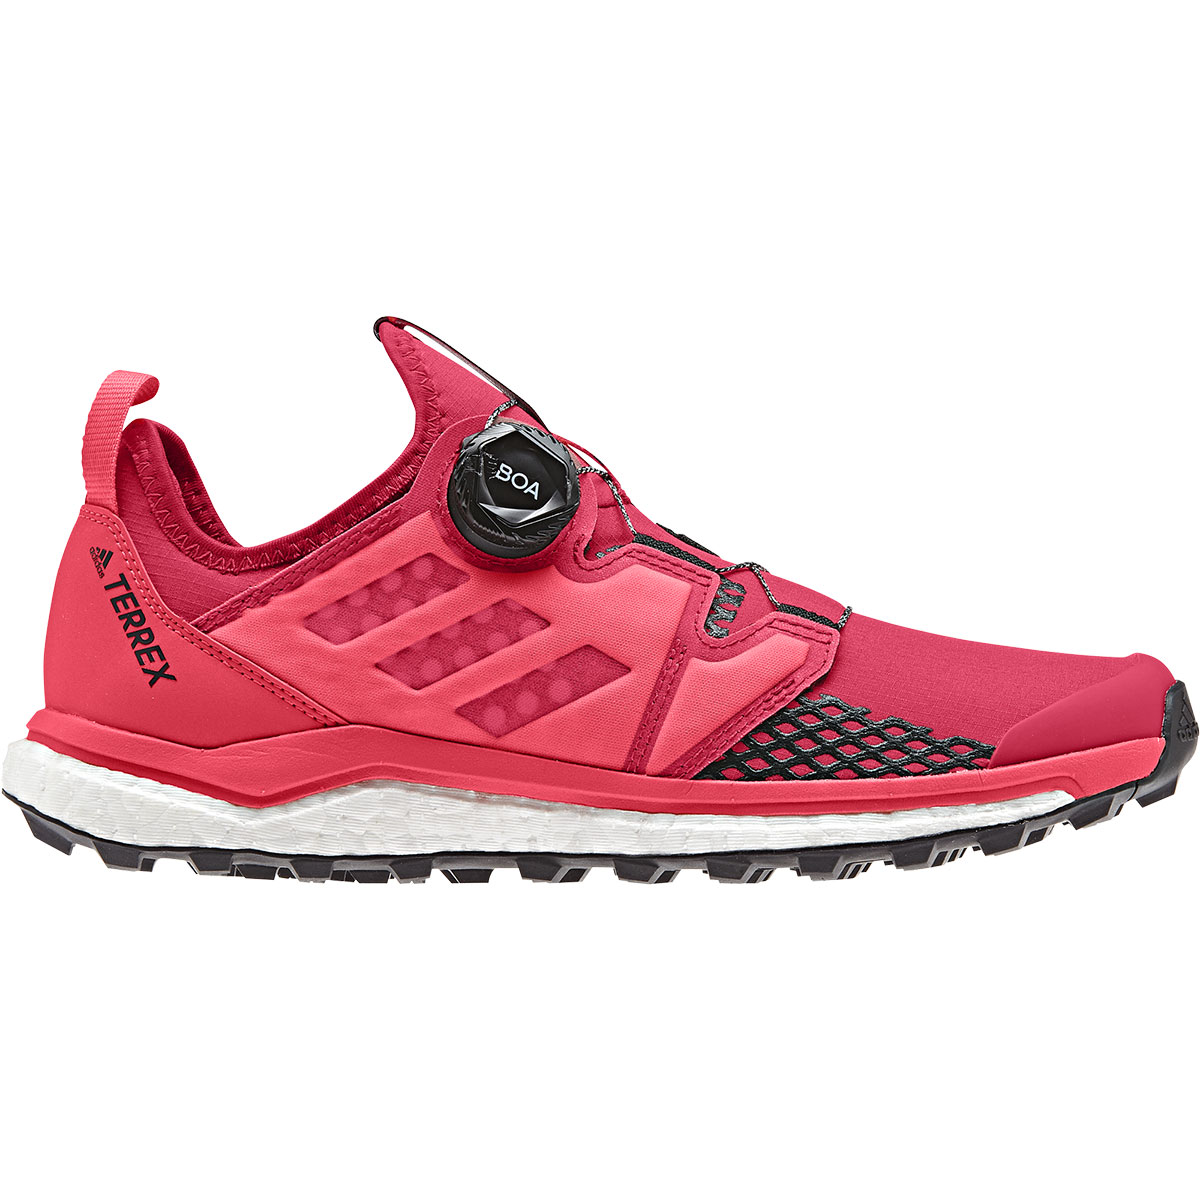 Womens trail running shoes with Boa Fit System for running in the mountains. The Boa Closure System adds unmatched adjustability and security